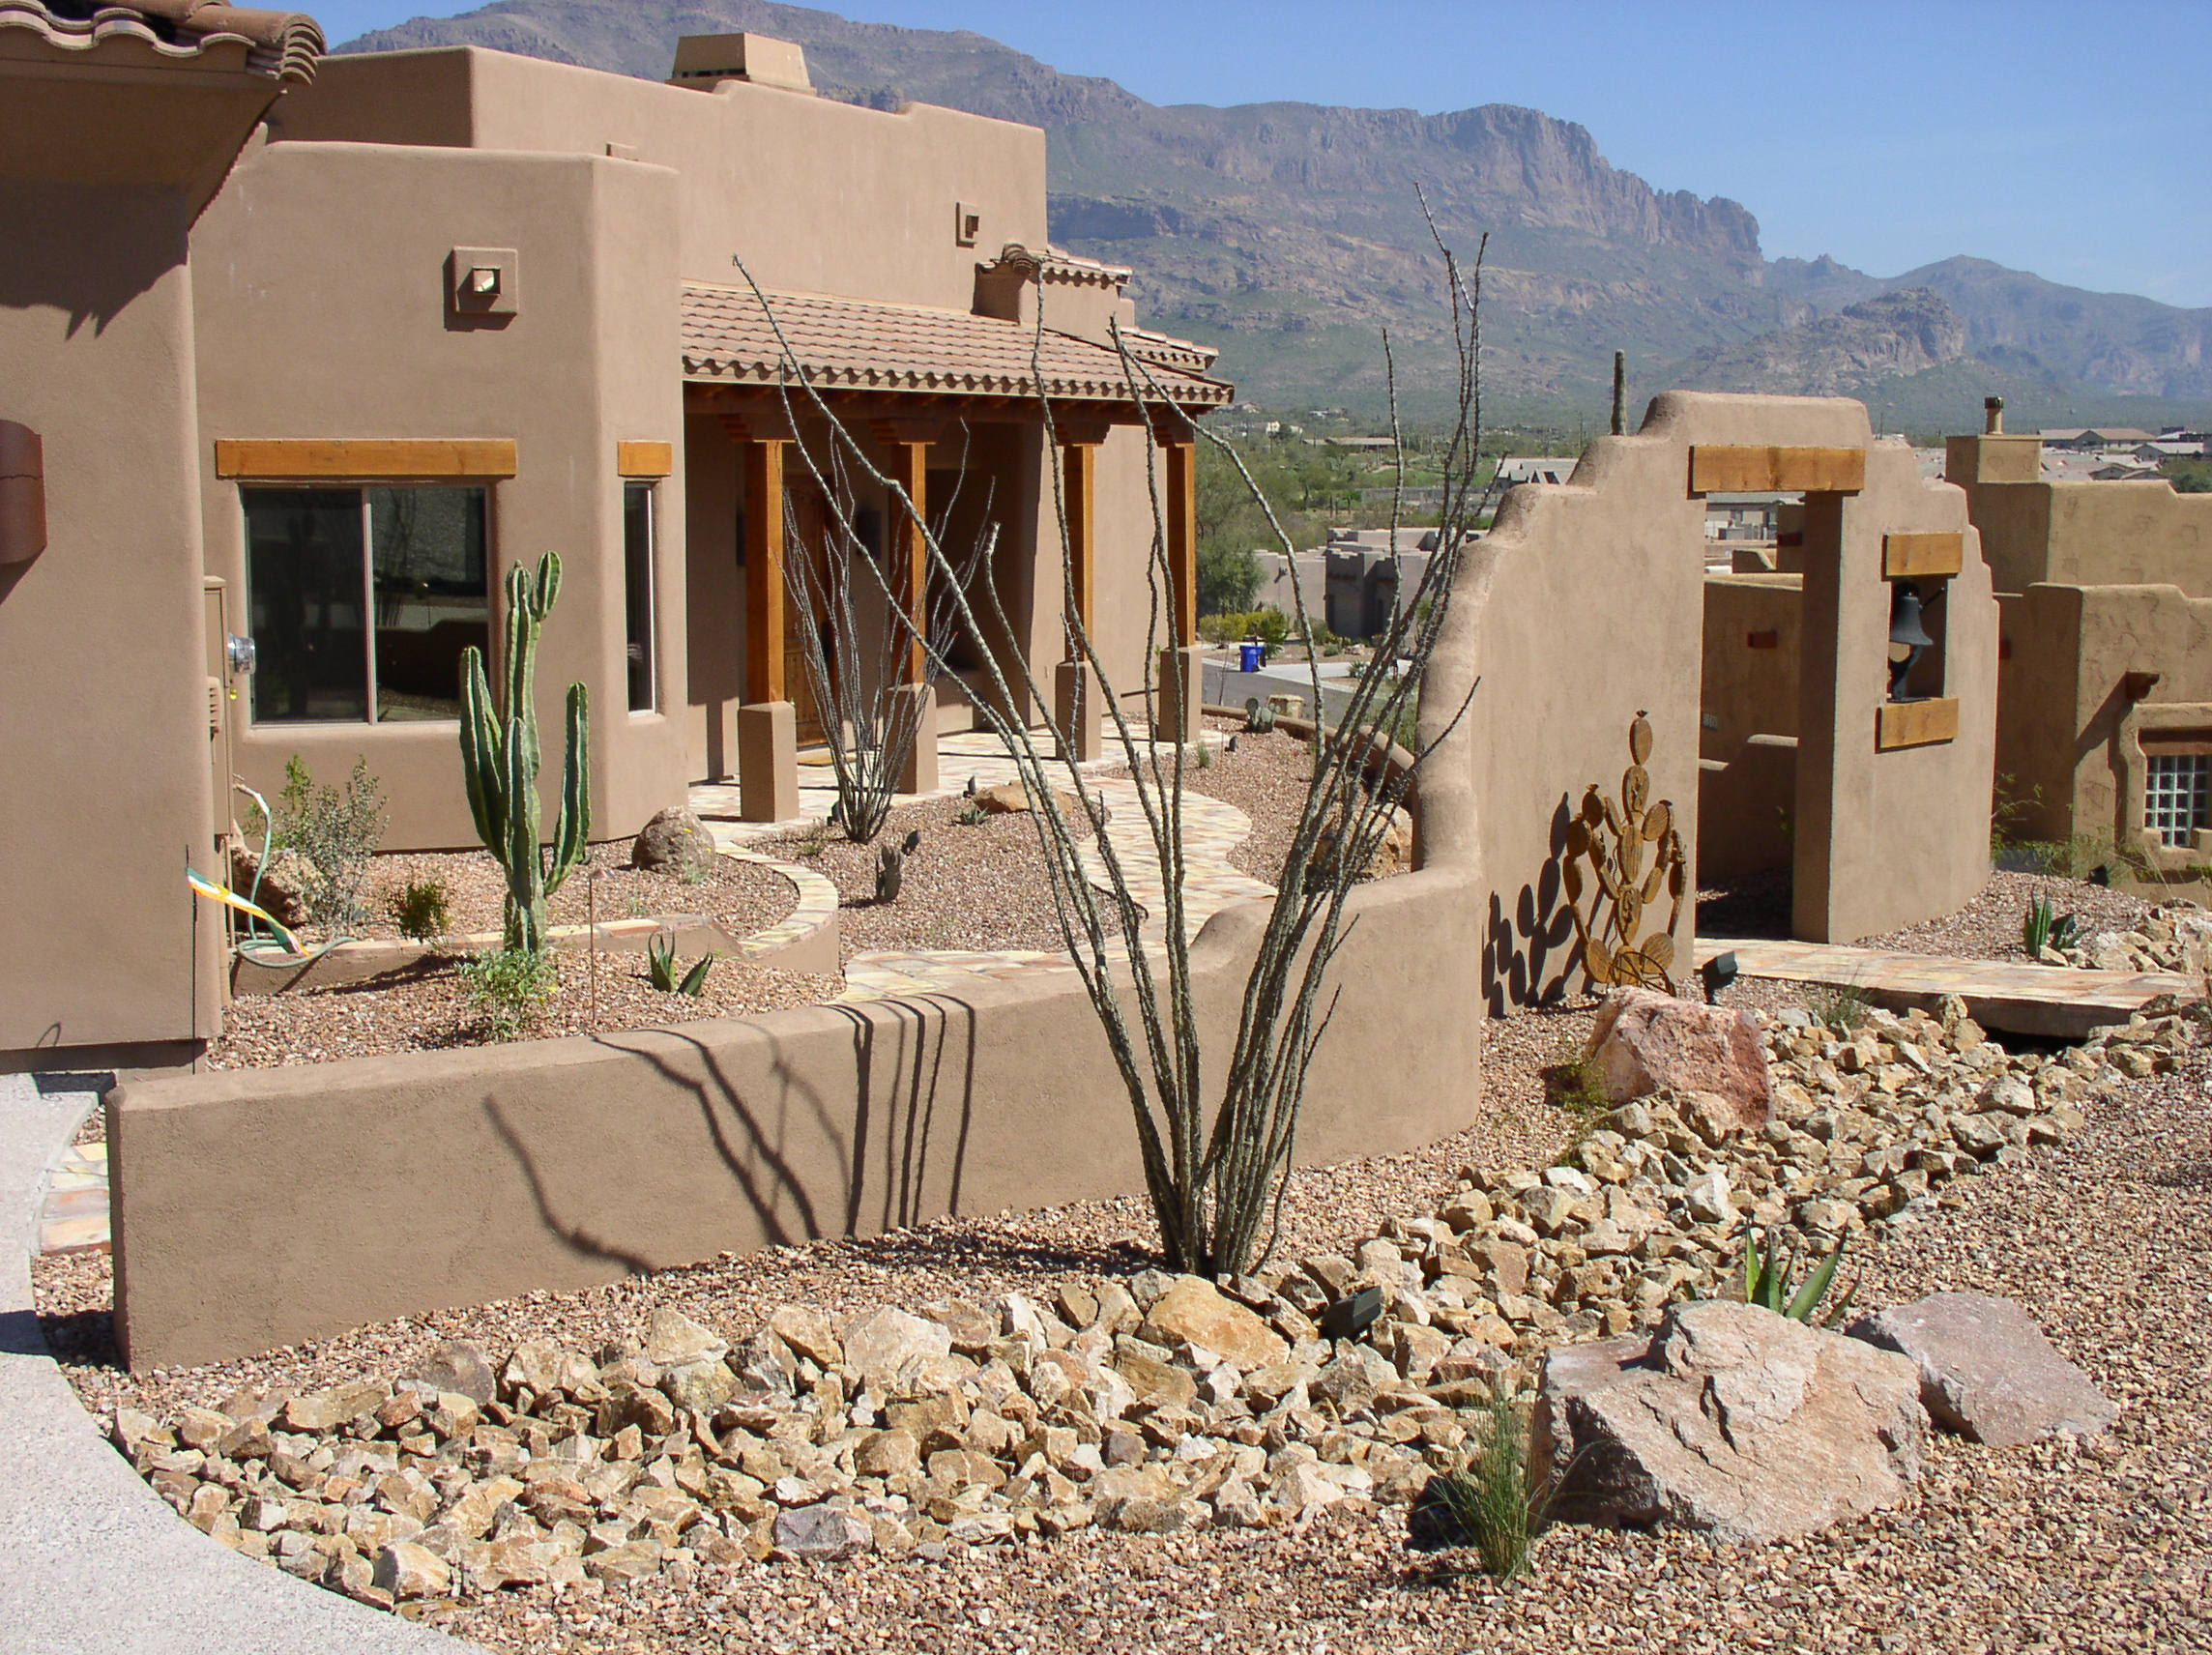 Desert Landscape Design Ideas desert landscape design ideas Paver Driveway And Landscaping For A Southwest Home Generally The Elements For This Style Of Home Are Really Simple While It May Take Some Skill